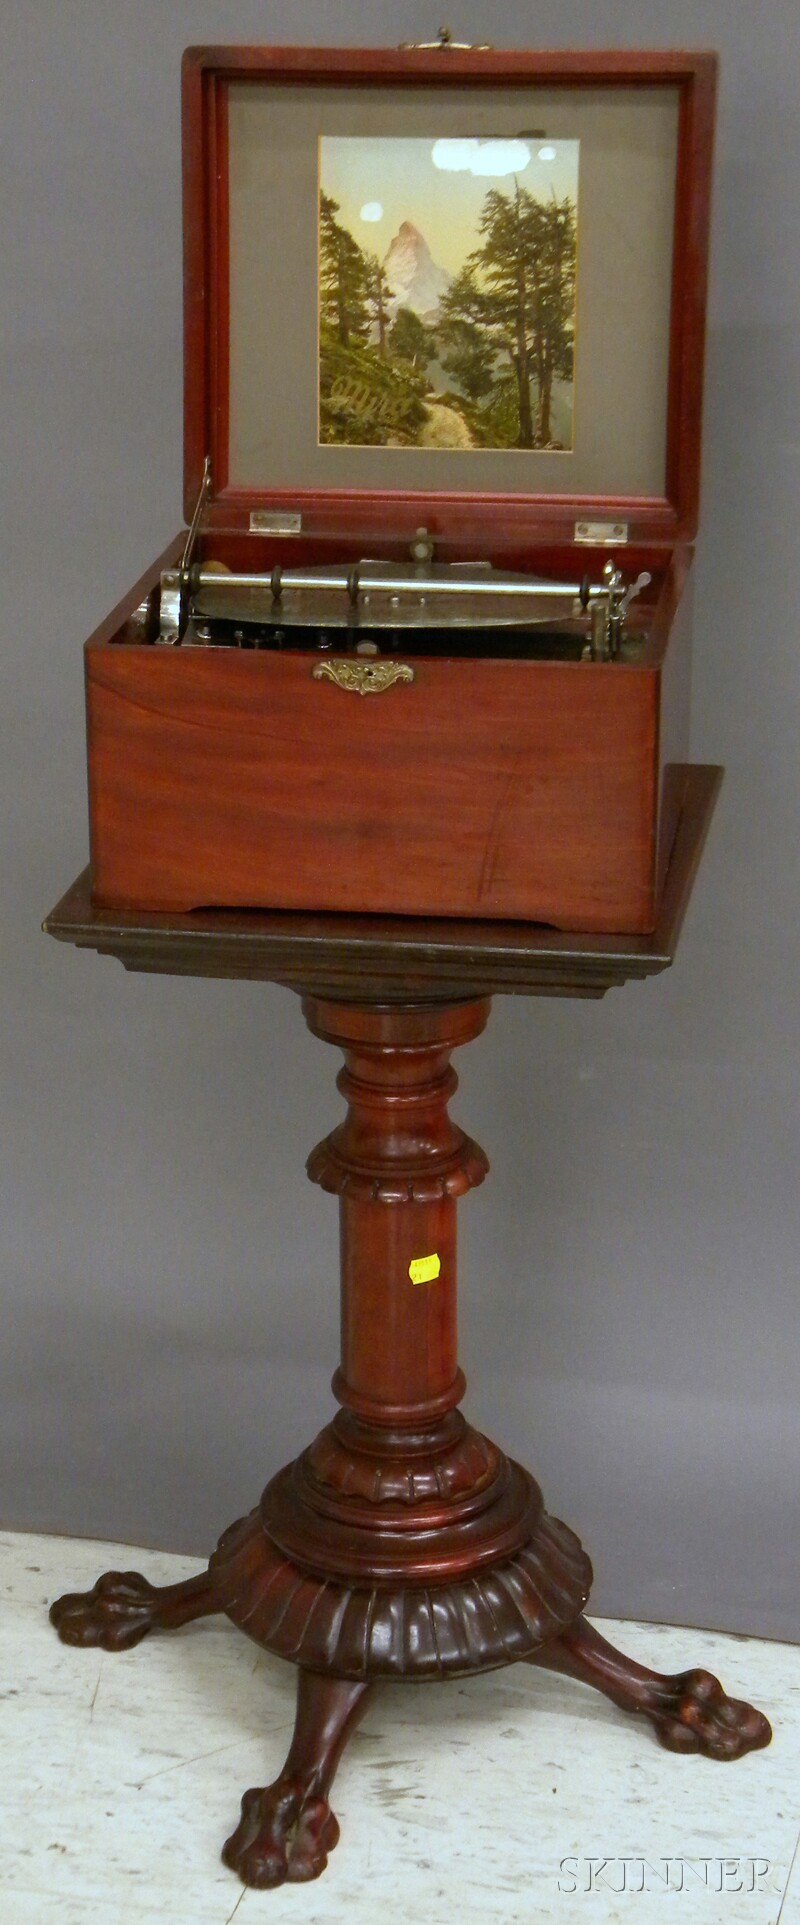 Swiss Mahogany Cased Mechanical 9 1/4-in. Disc Music Player with a Carved Mahogany   Stand